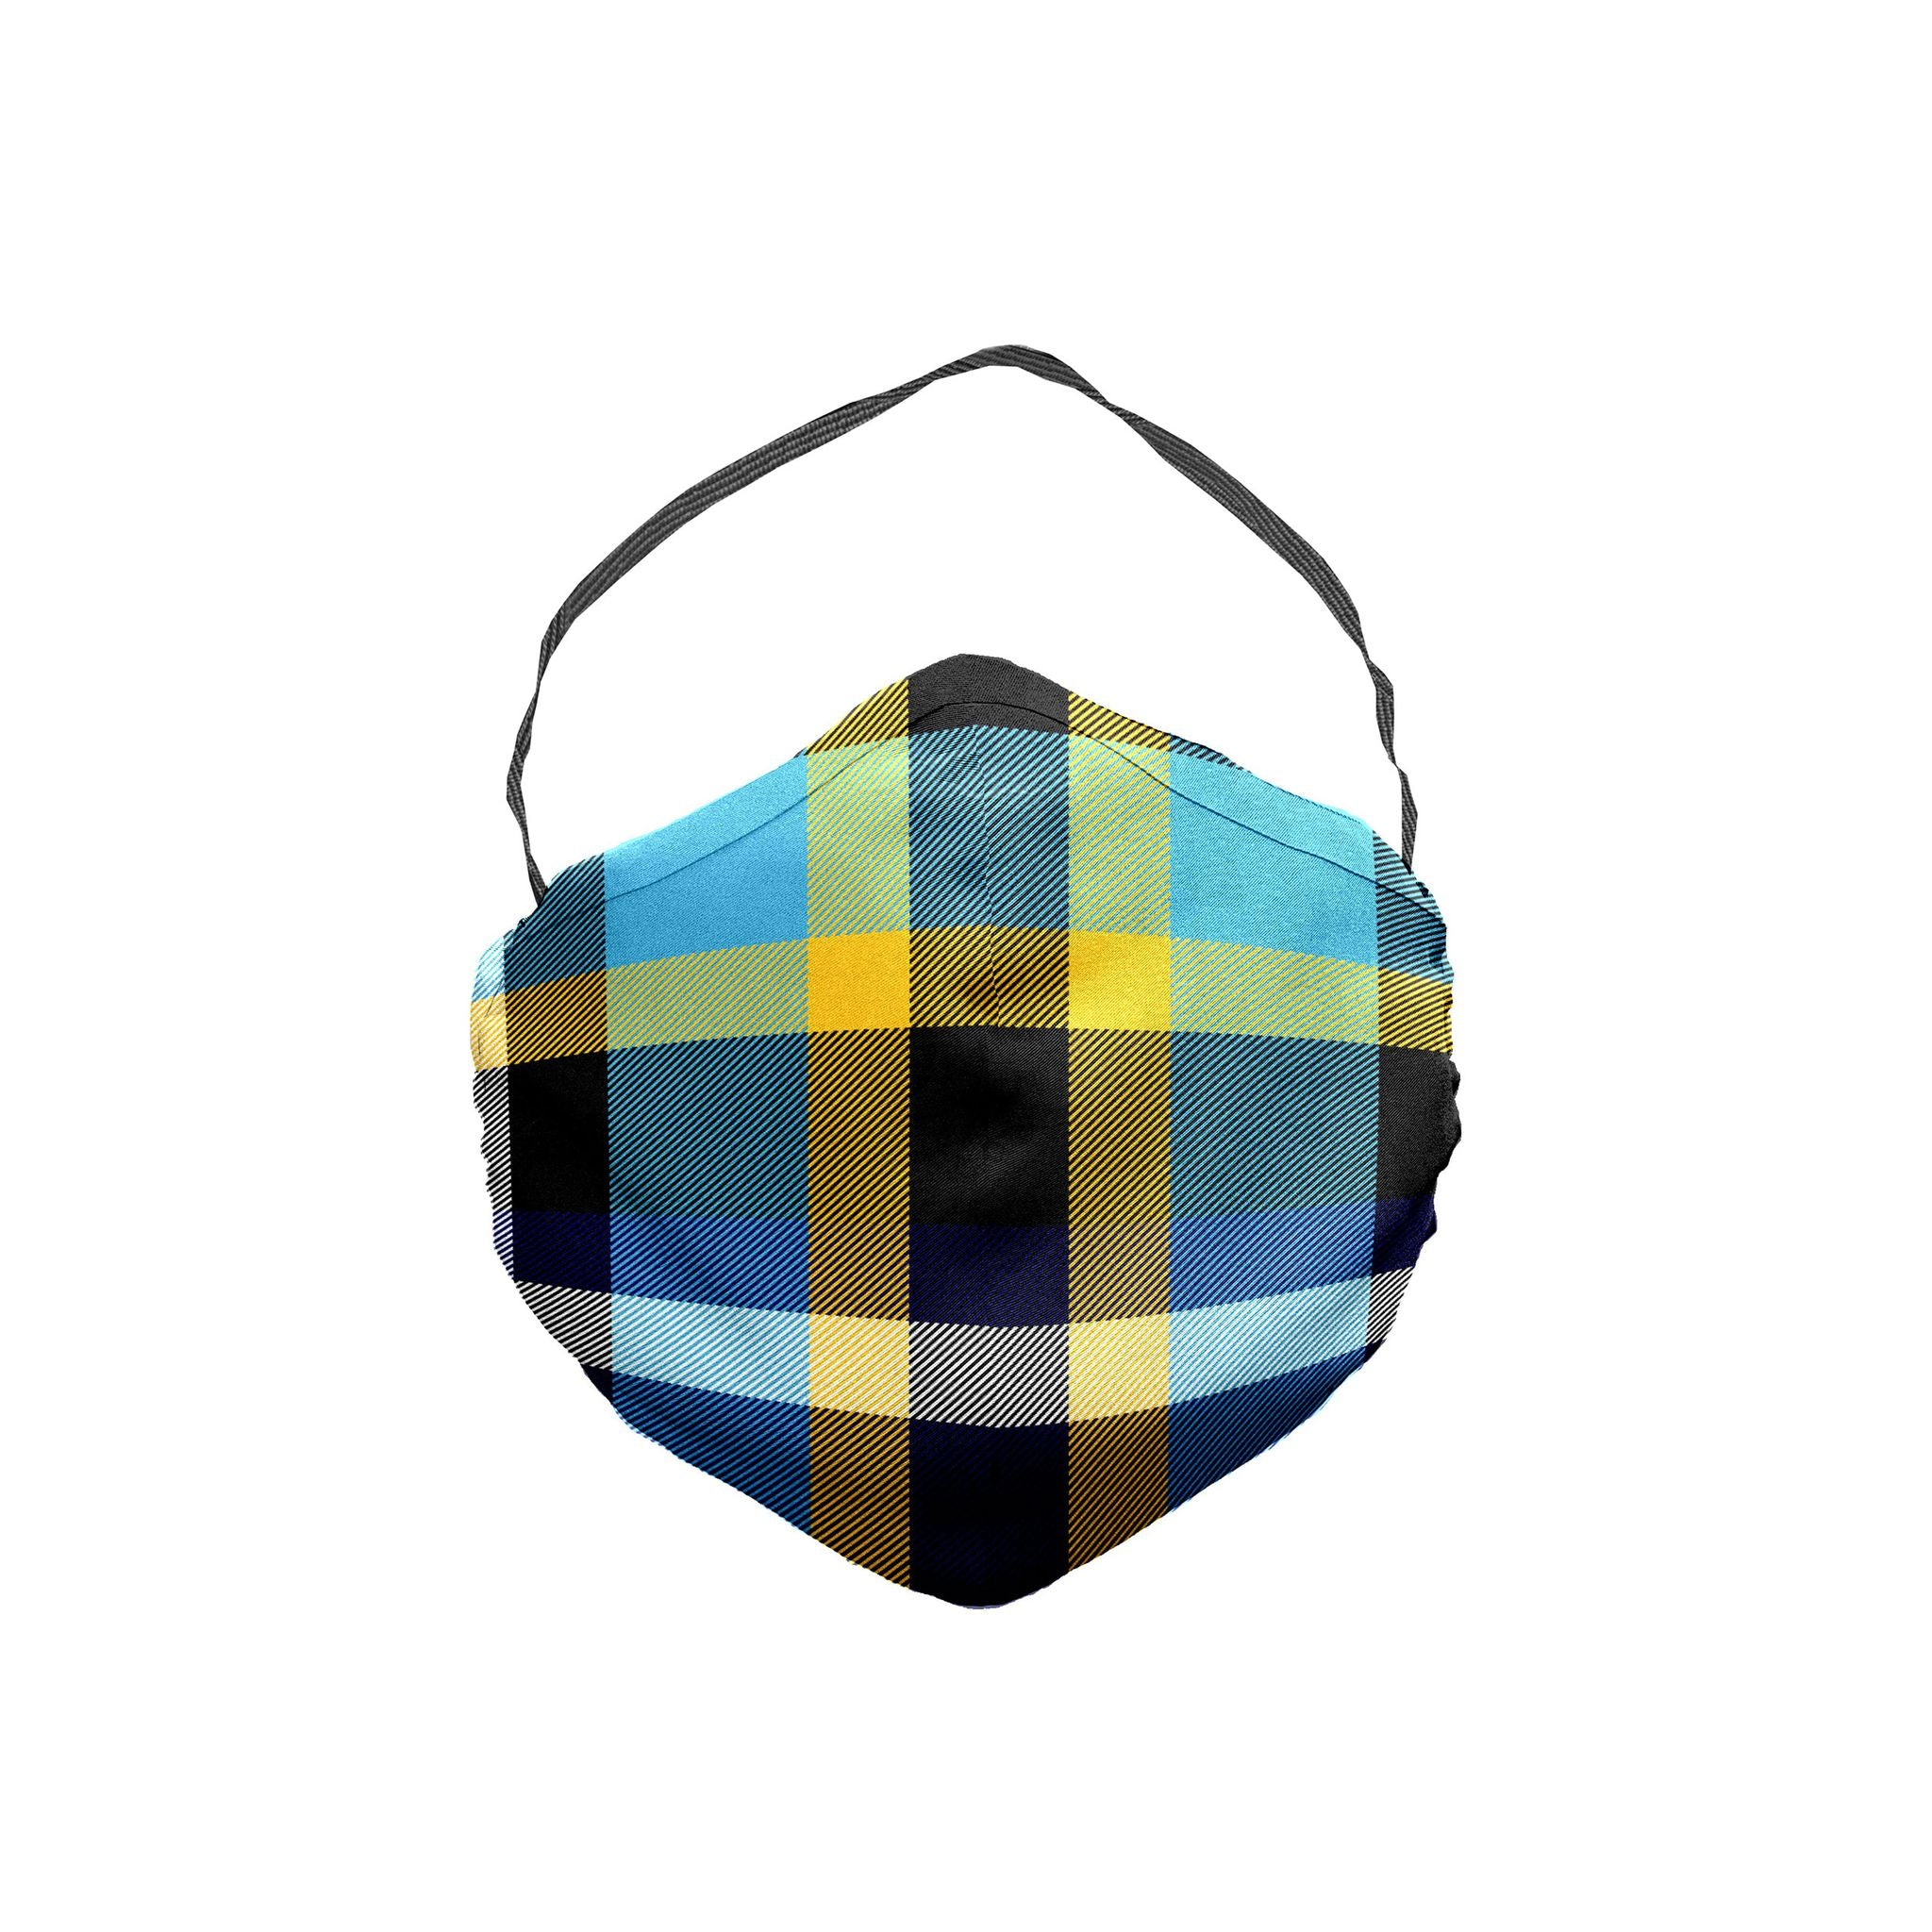 The New York Plaid Face Mask 5 Pack